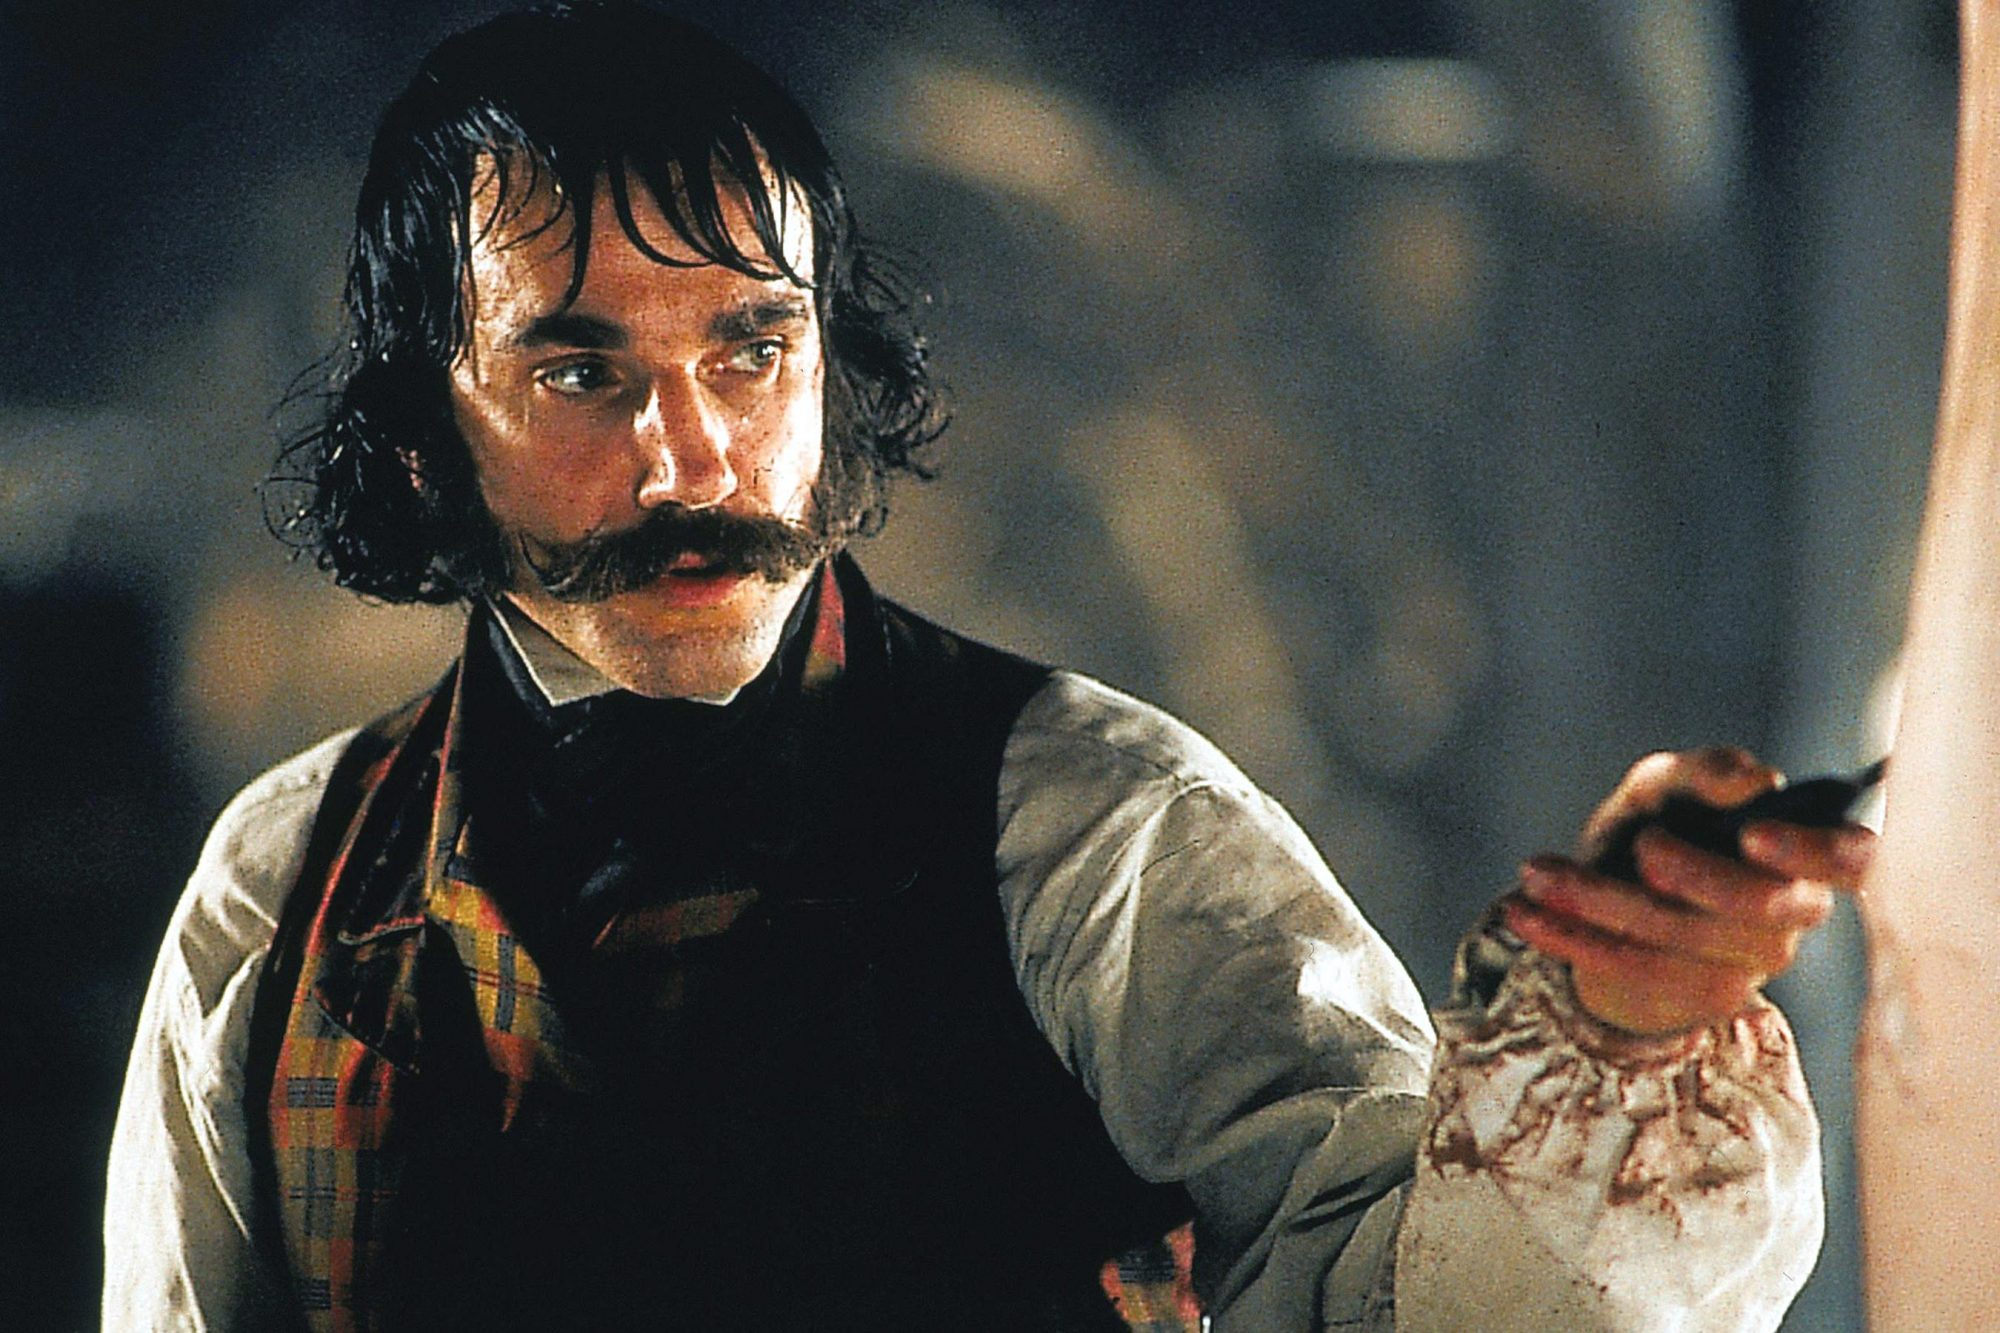 GANGS OF NEW YORK, Daniel Day-Lewis, 2002, (c) Miramax/courtesy Everett Collection